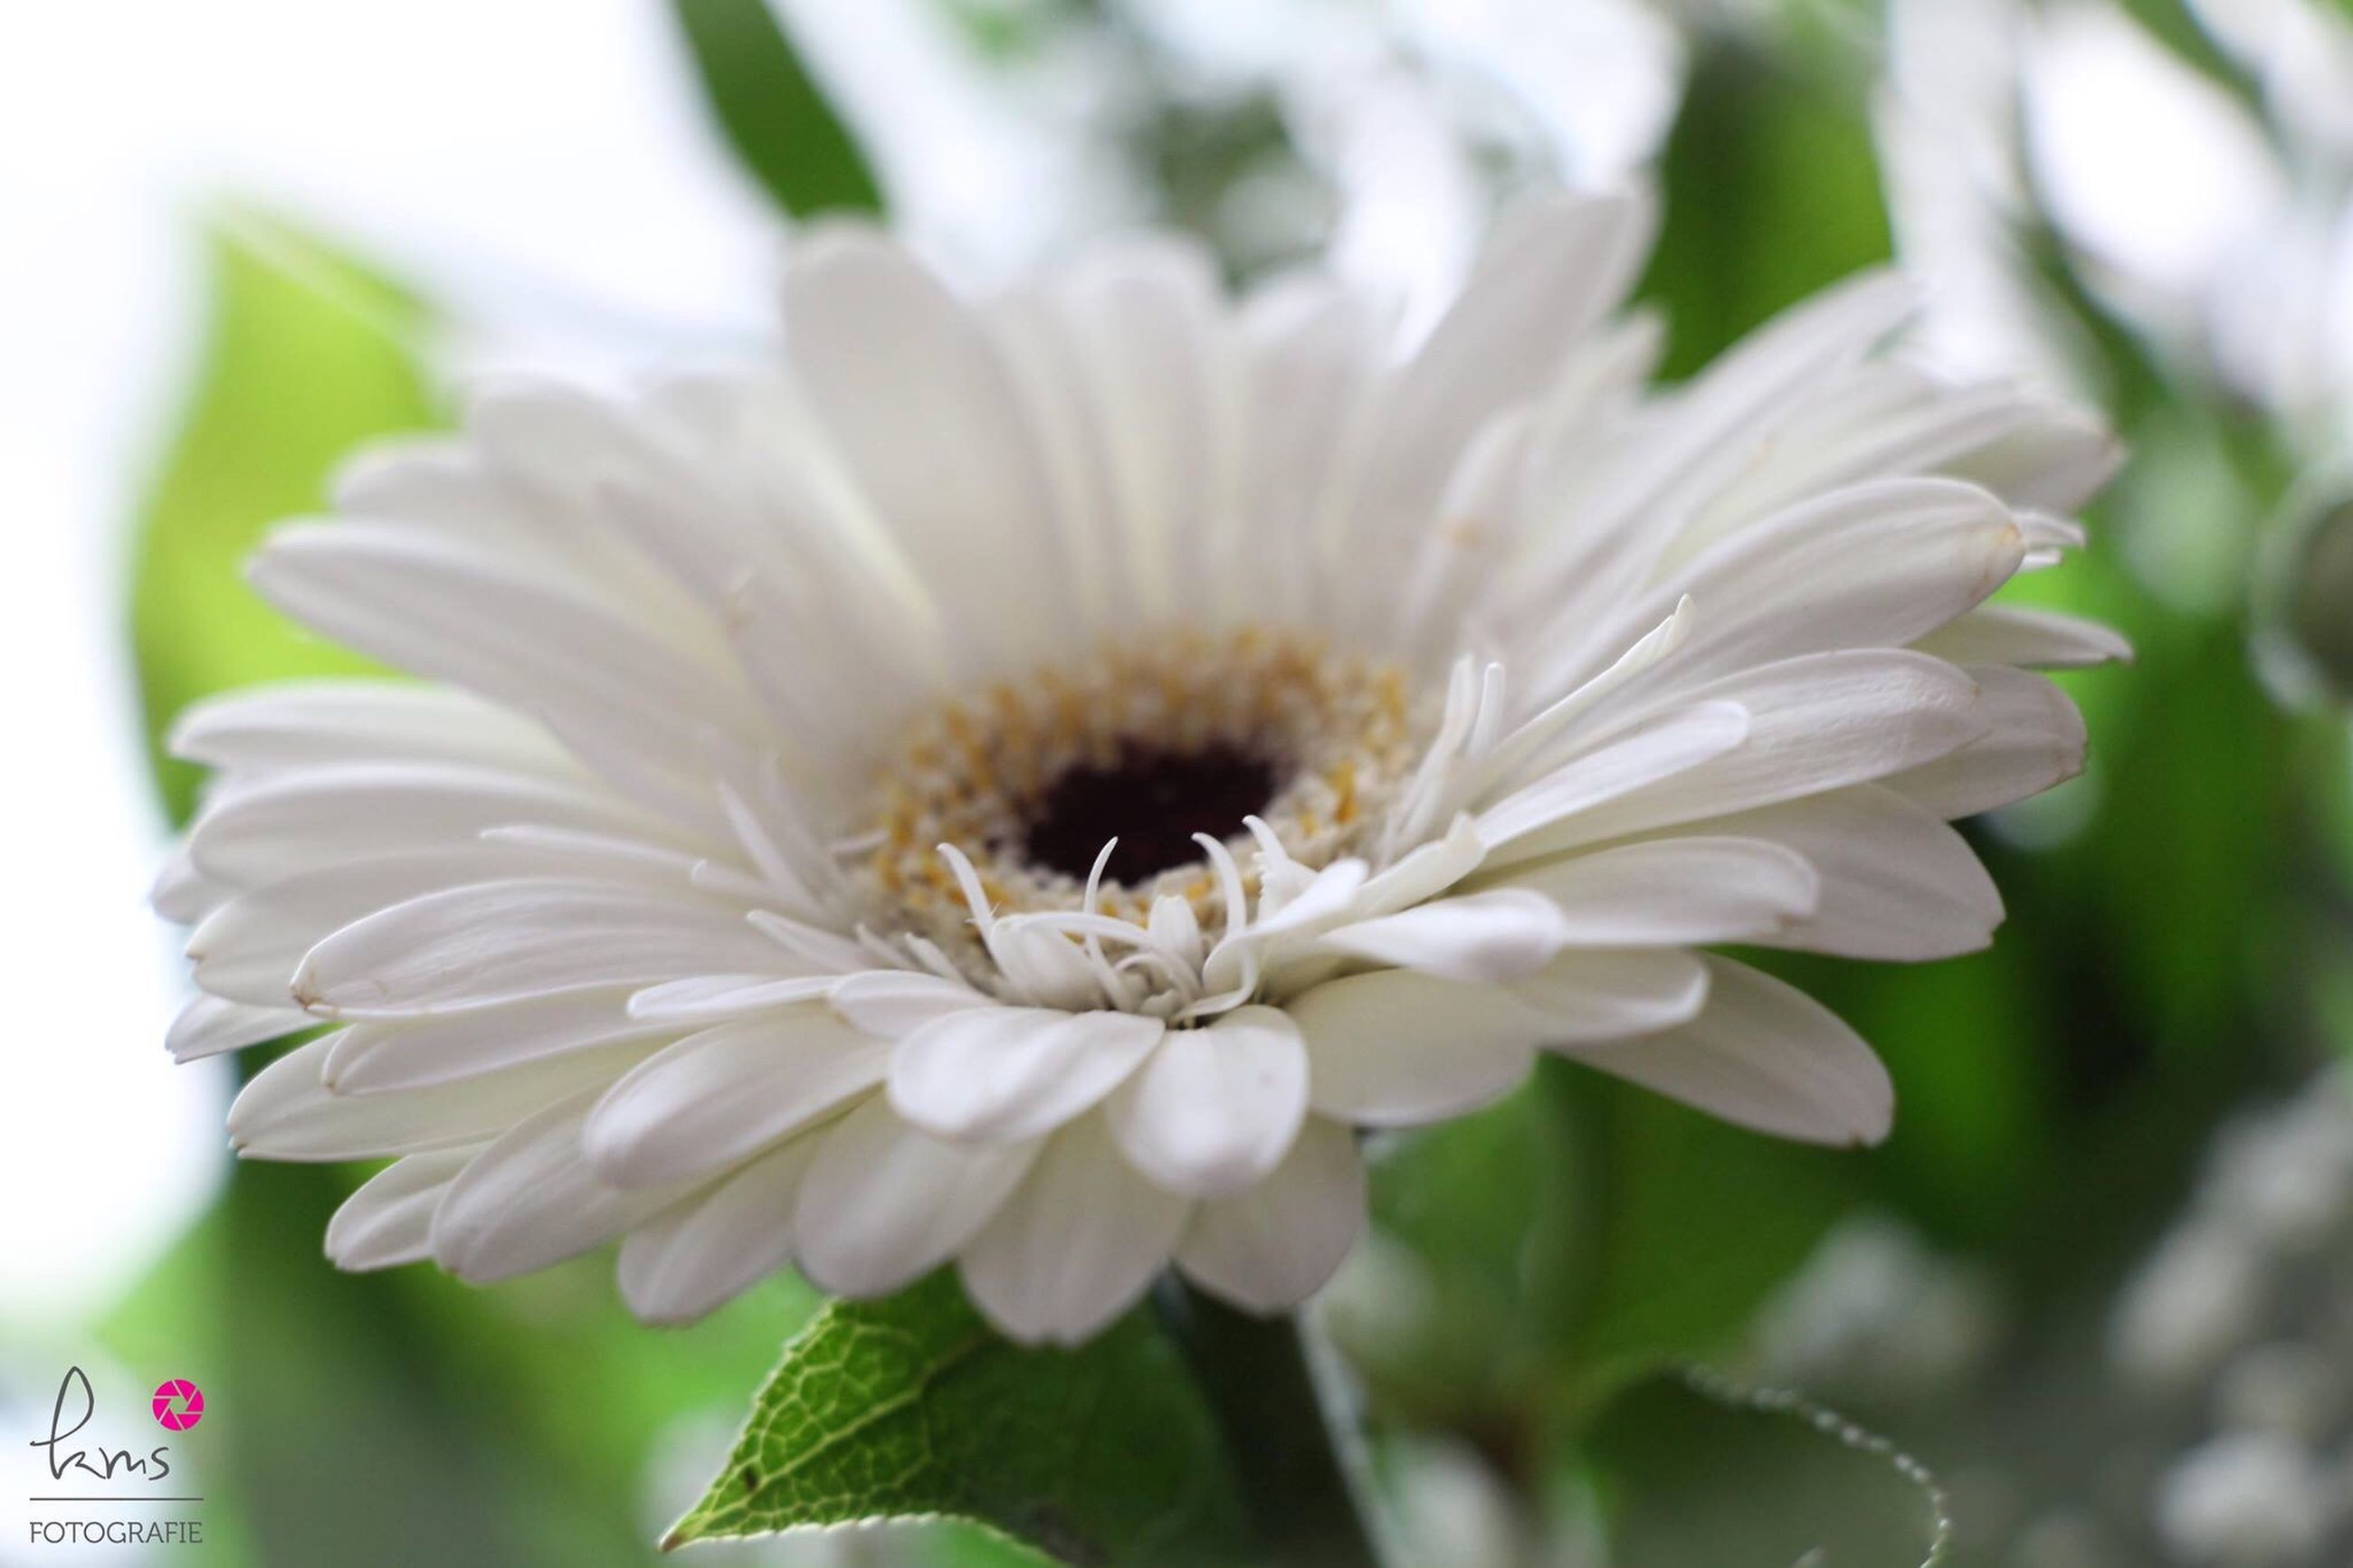 flower, petal, freshness, flower head, white color, fragility, growth, close-up, focus on foreground, beauty in nature, pollen, blooming, nature, stamen, plant, white, single flower, in bloom, day, outdoors